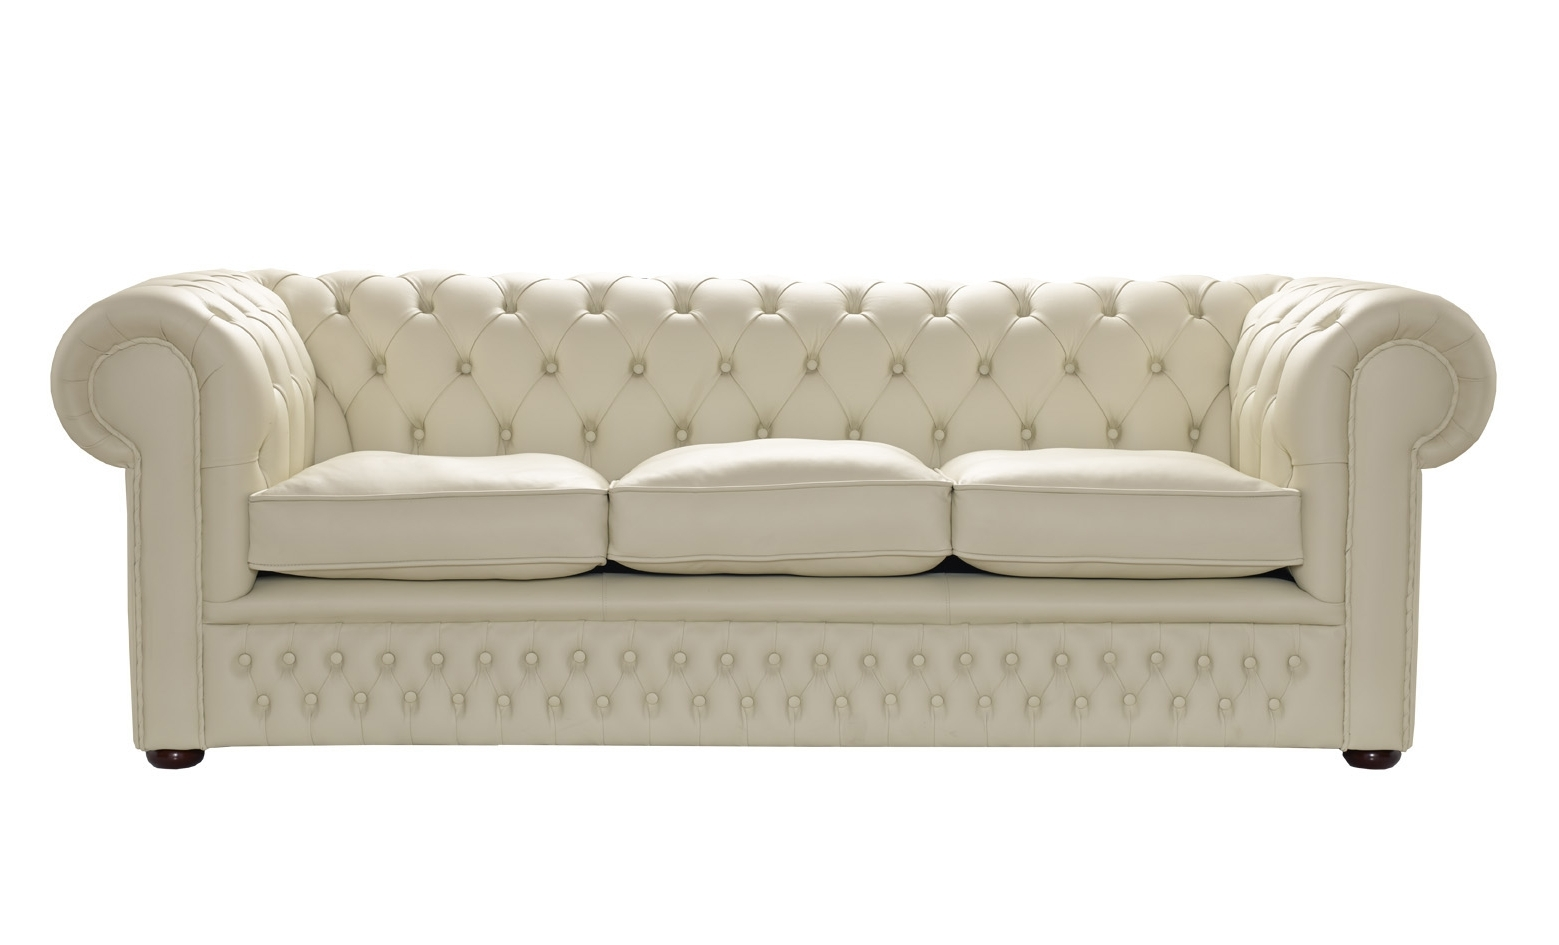 Well Known Cream Colored Sofas Intended For Great Cream Colored Sofa 84 With Additional Sofa Room Ideas With (View 13 of 15)